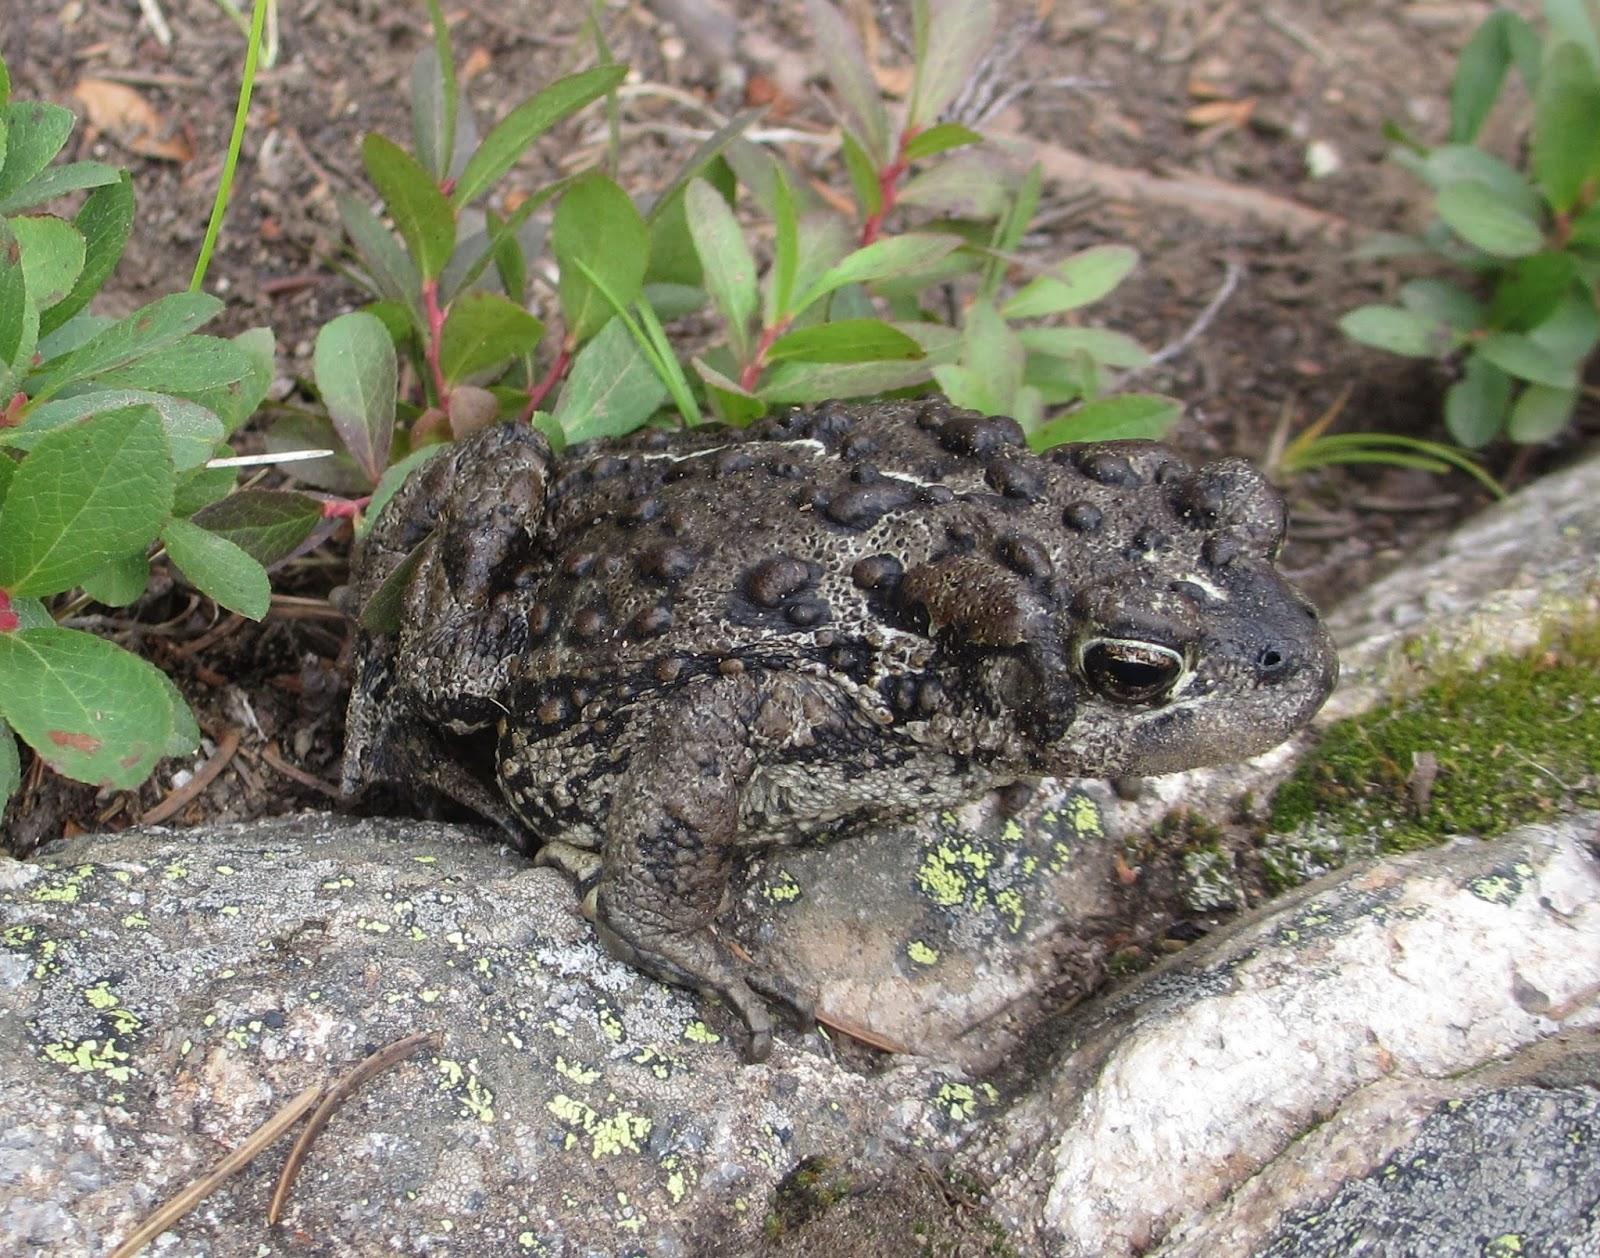 Cannundrums boreal toad it looked very similar to the common california toads we find in our area except that it seemed smaller and gray sciox Image collections